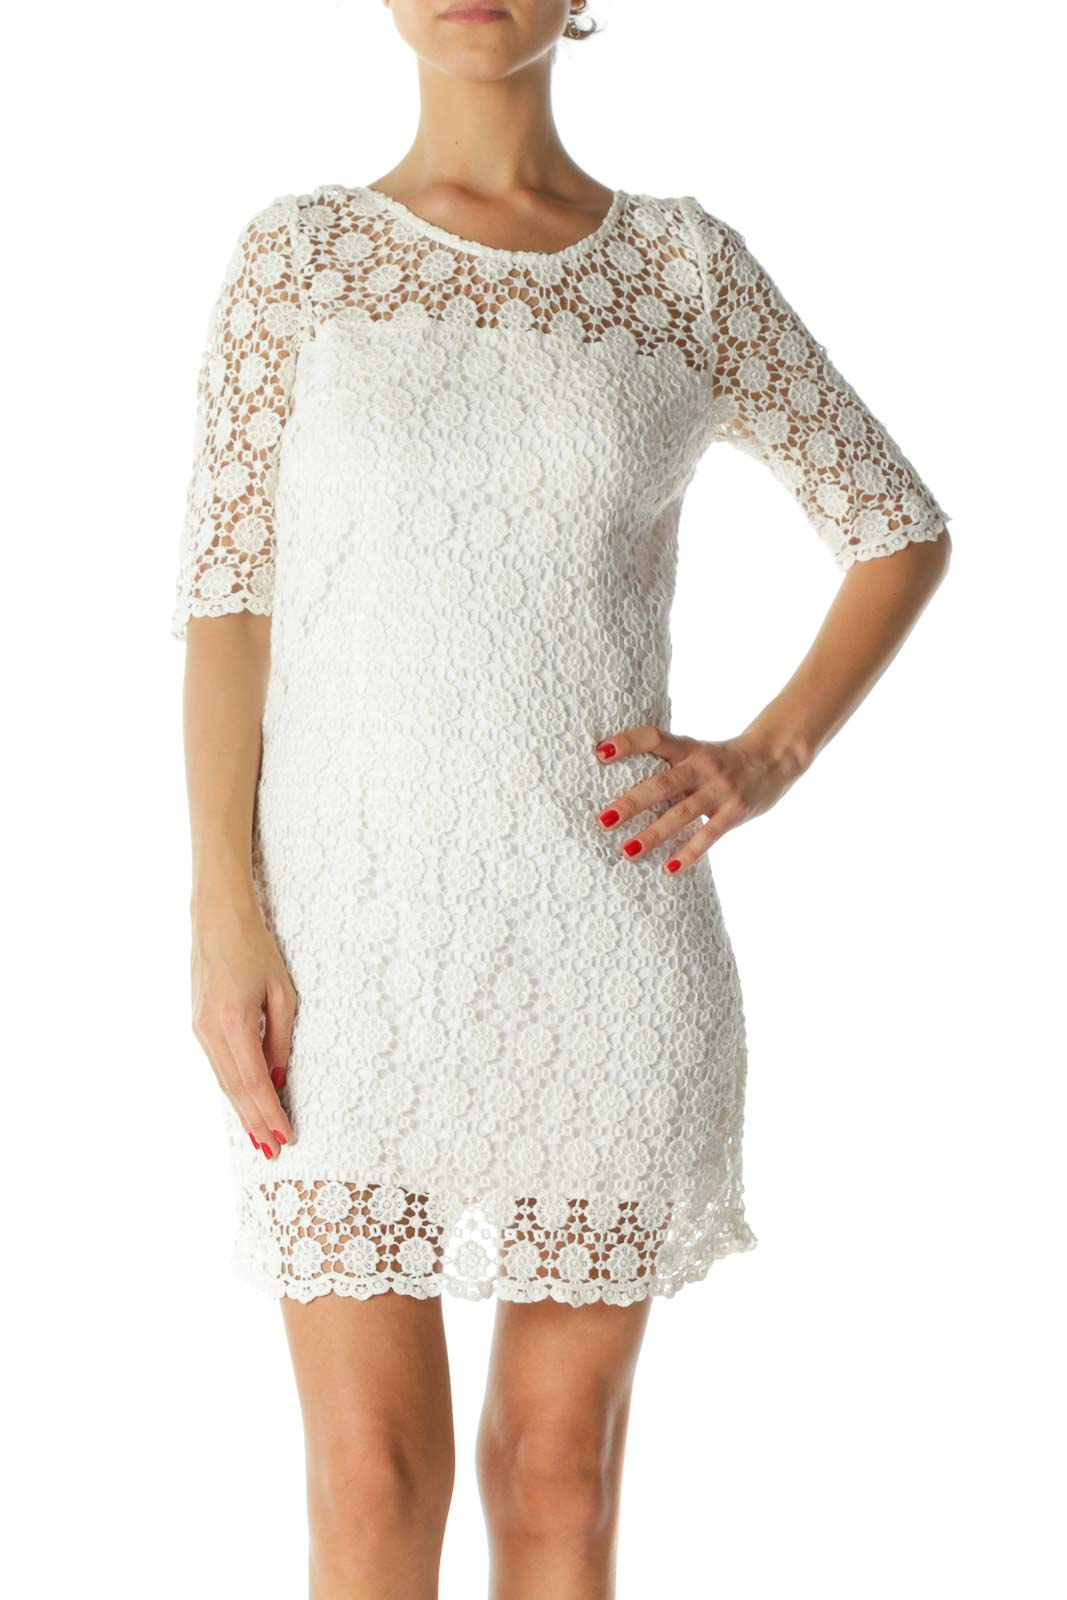 White 100% Cotton Round-Neck 3/4 Sleeve Floral-Knit Dress